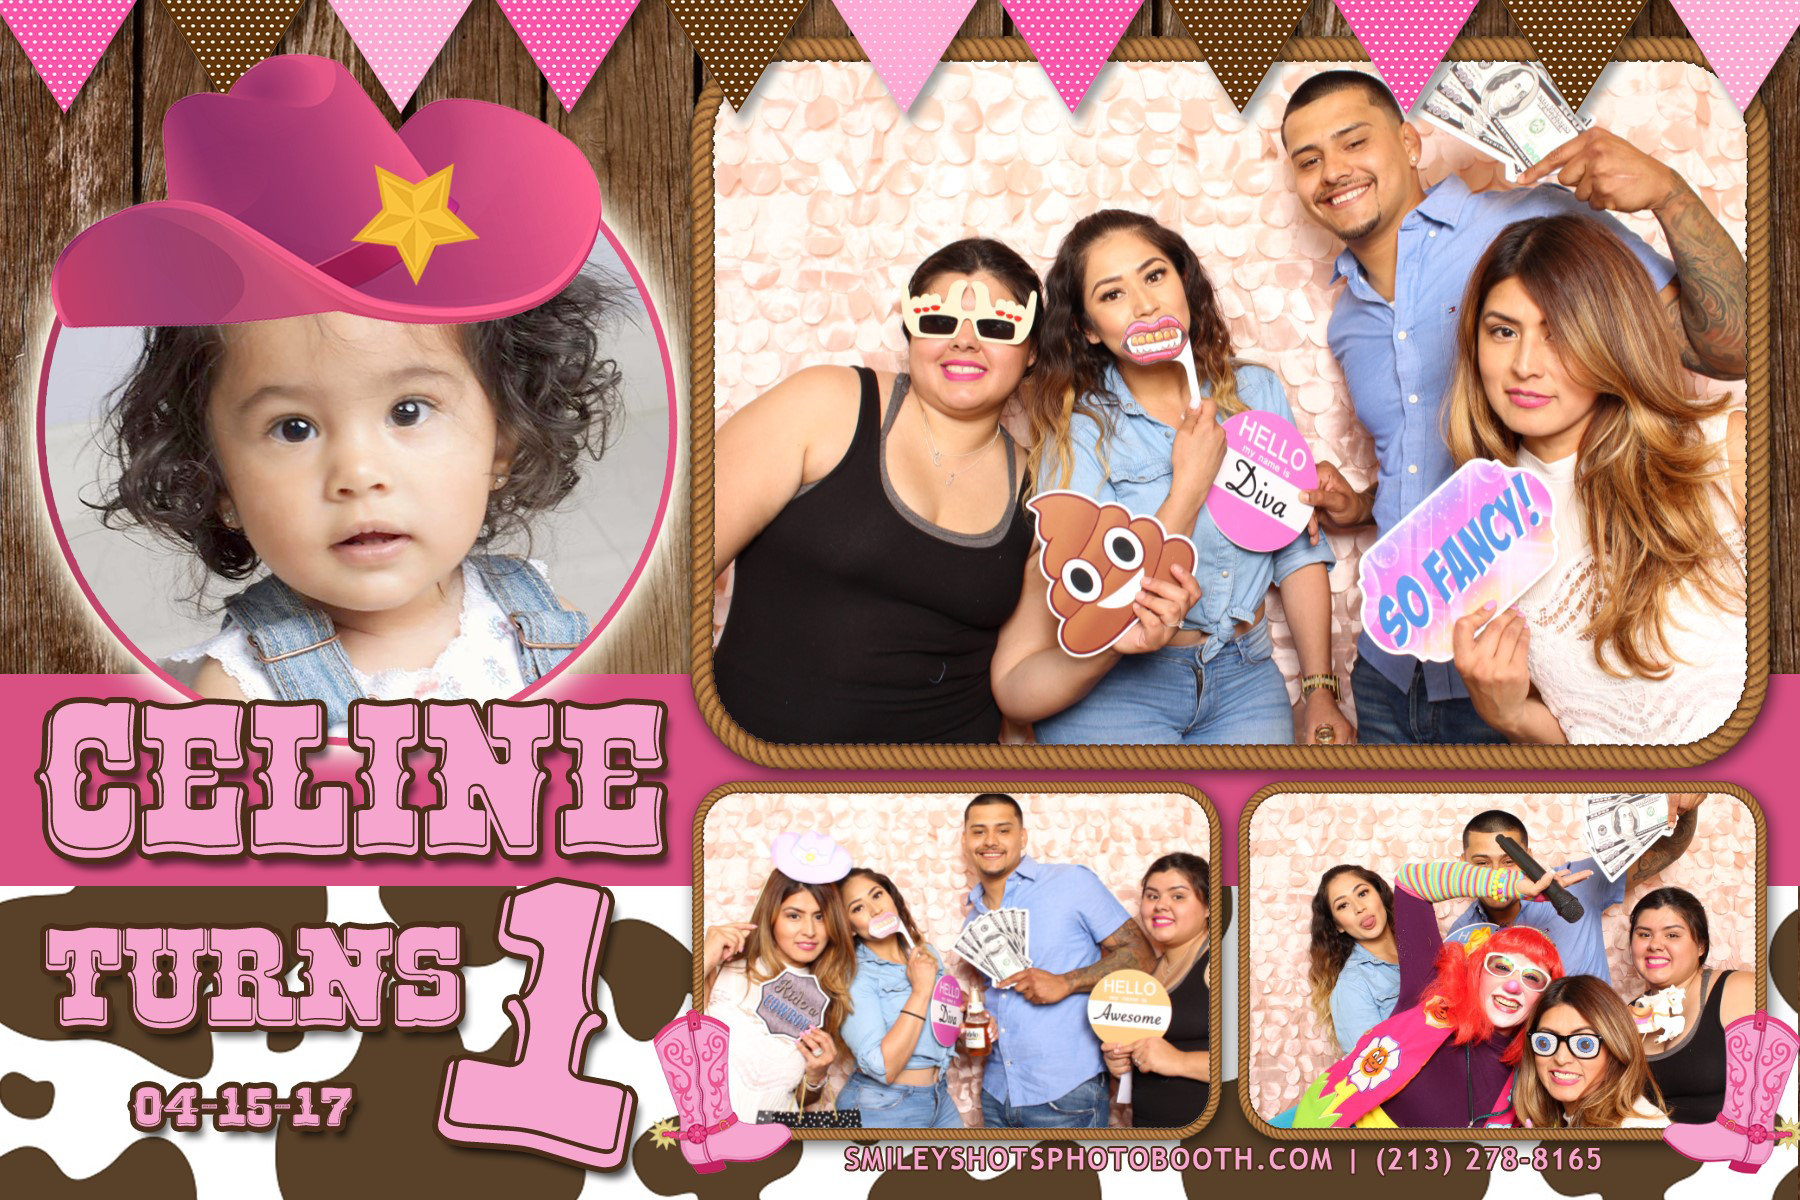 Celine turns 1 Smiley Shots Photo Booth Photobooth (32).png